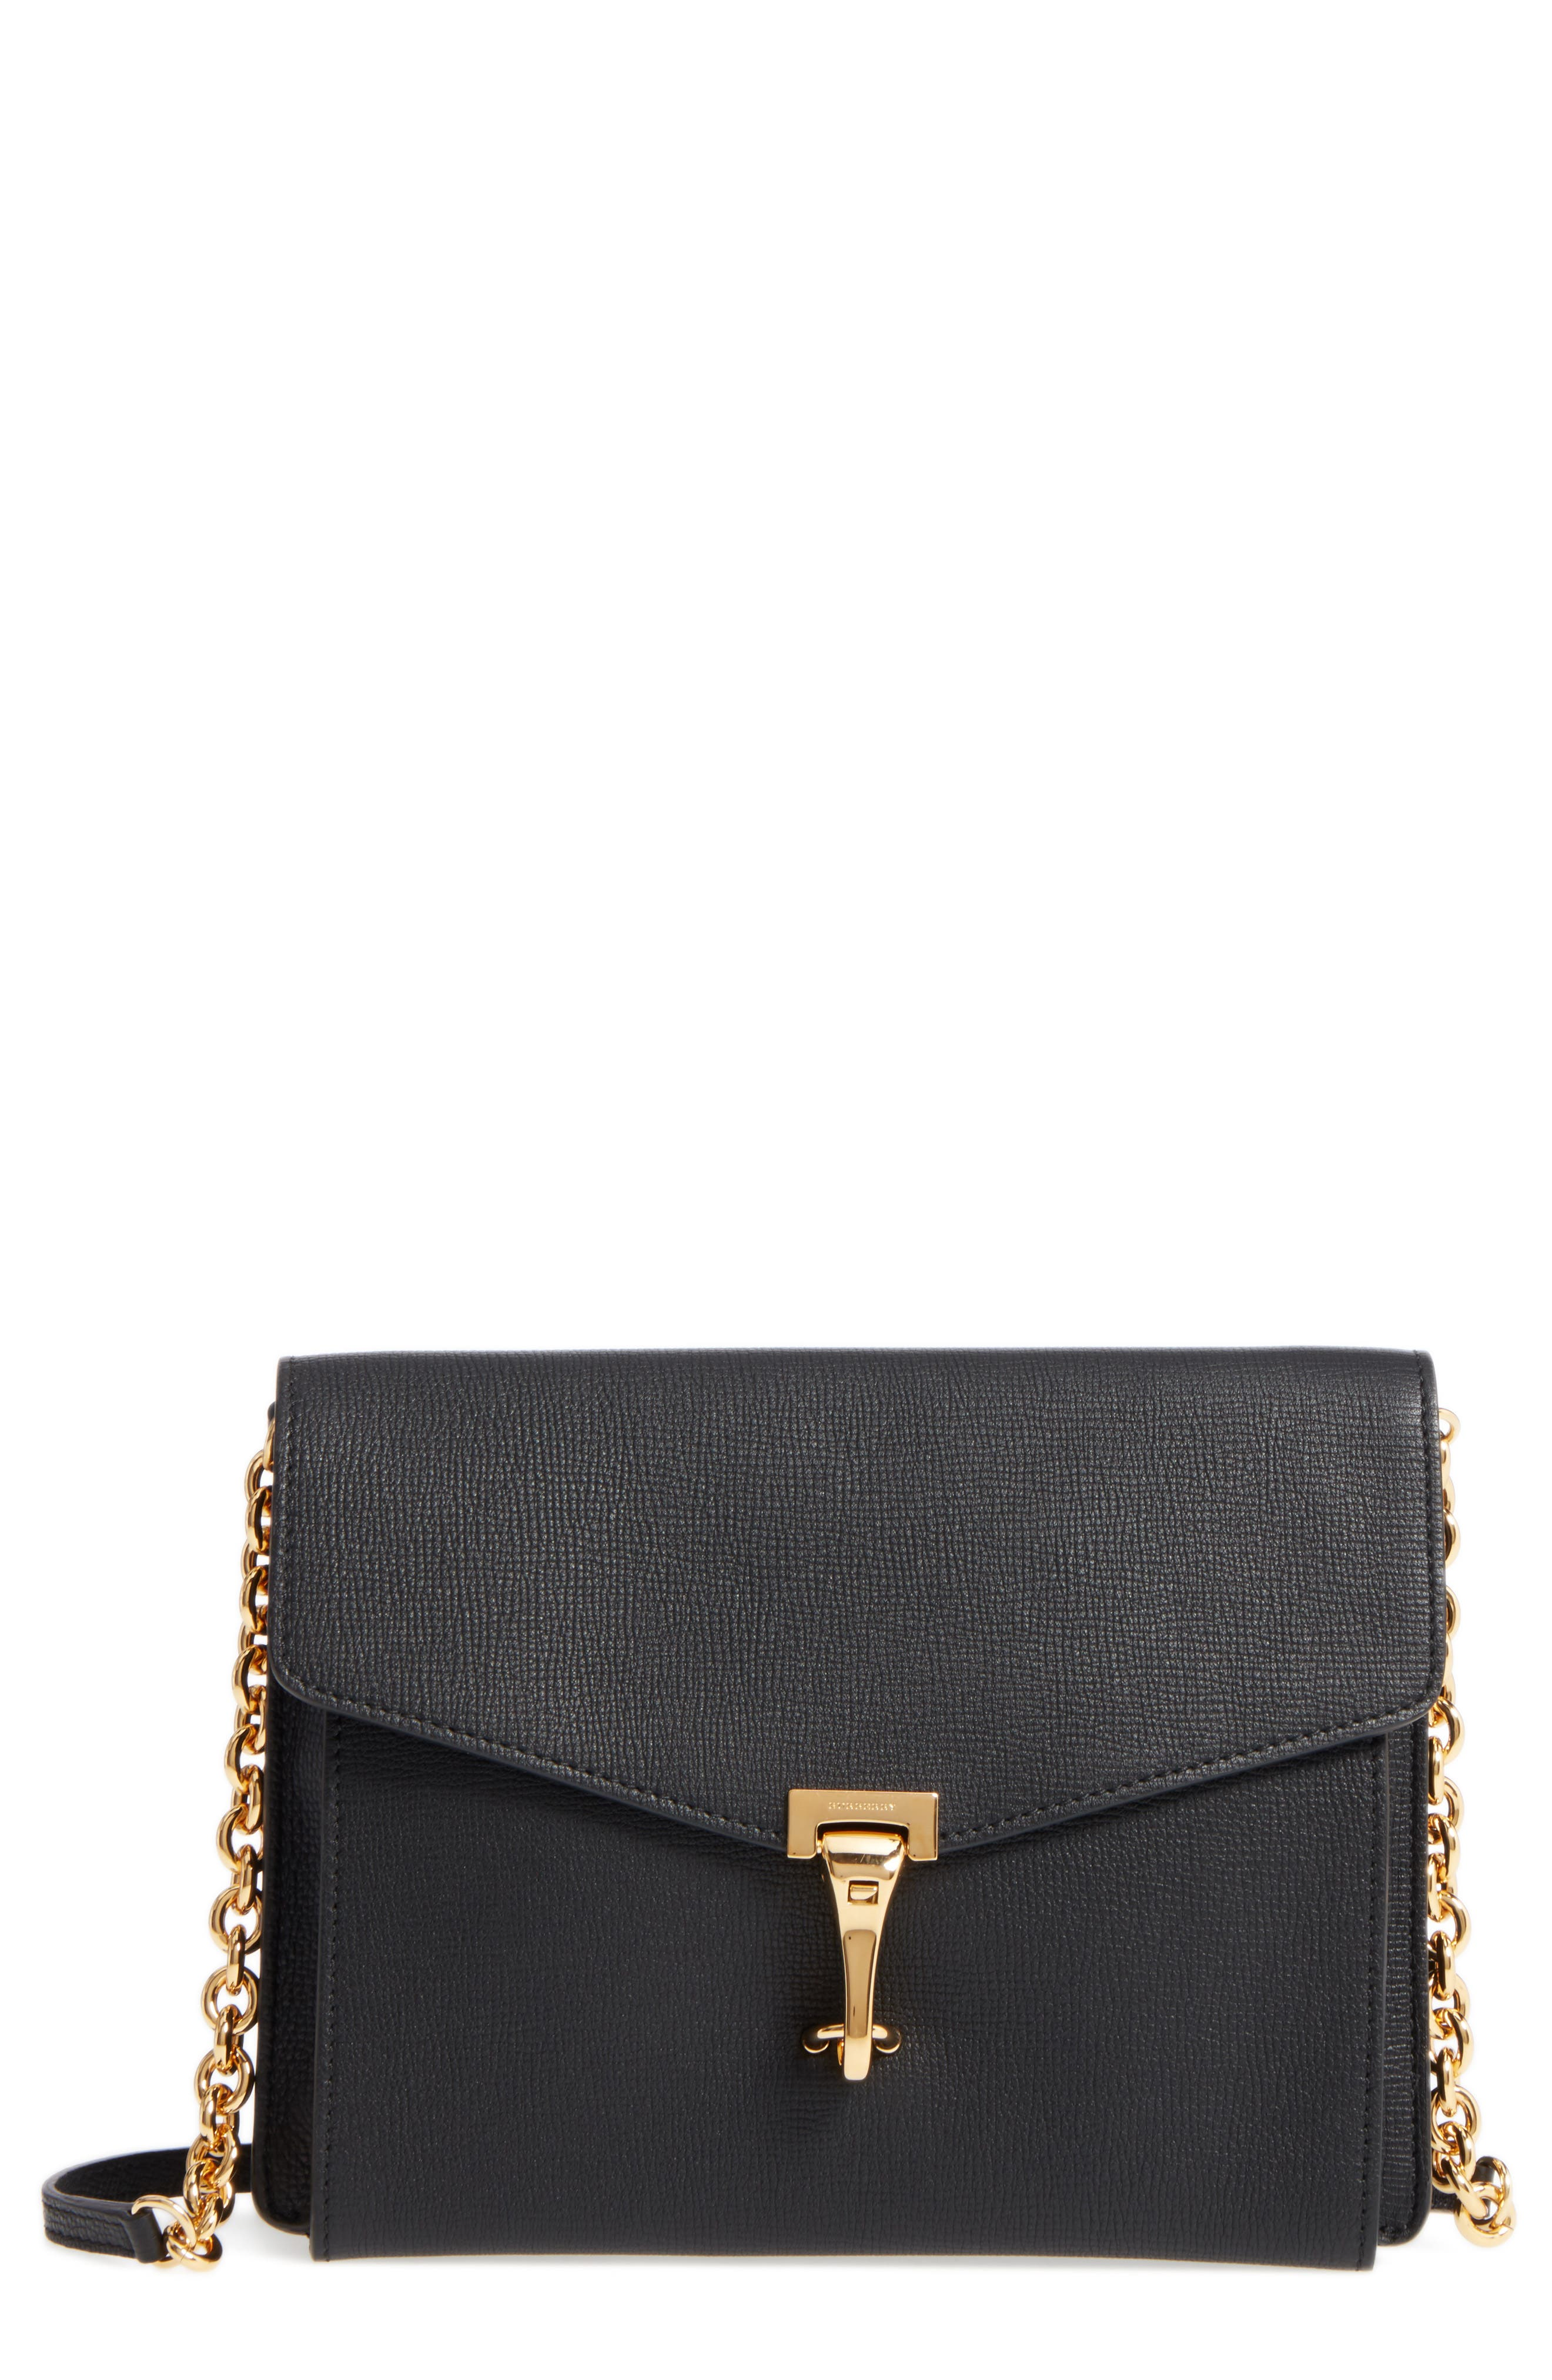 Macken Leather Crossbody Bag,                         Main,                         color, Black